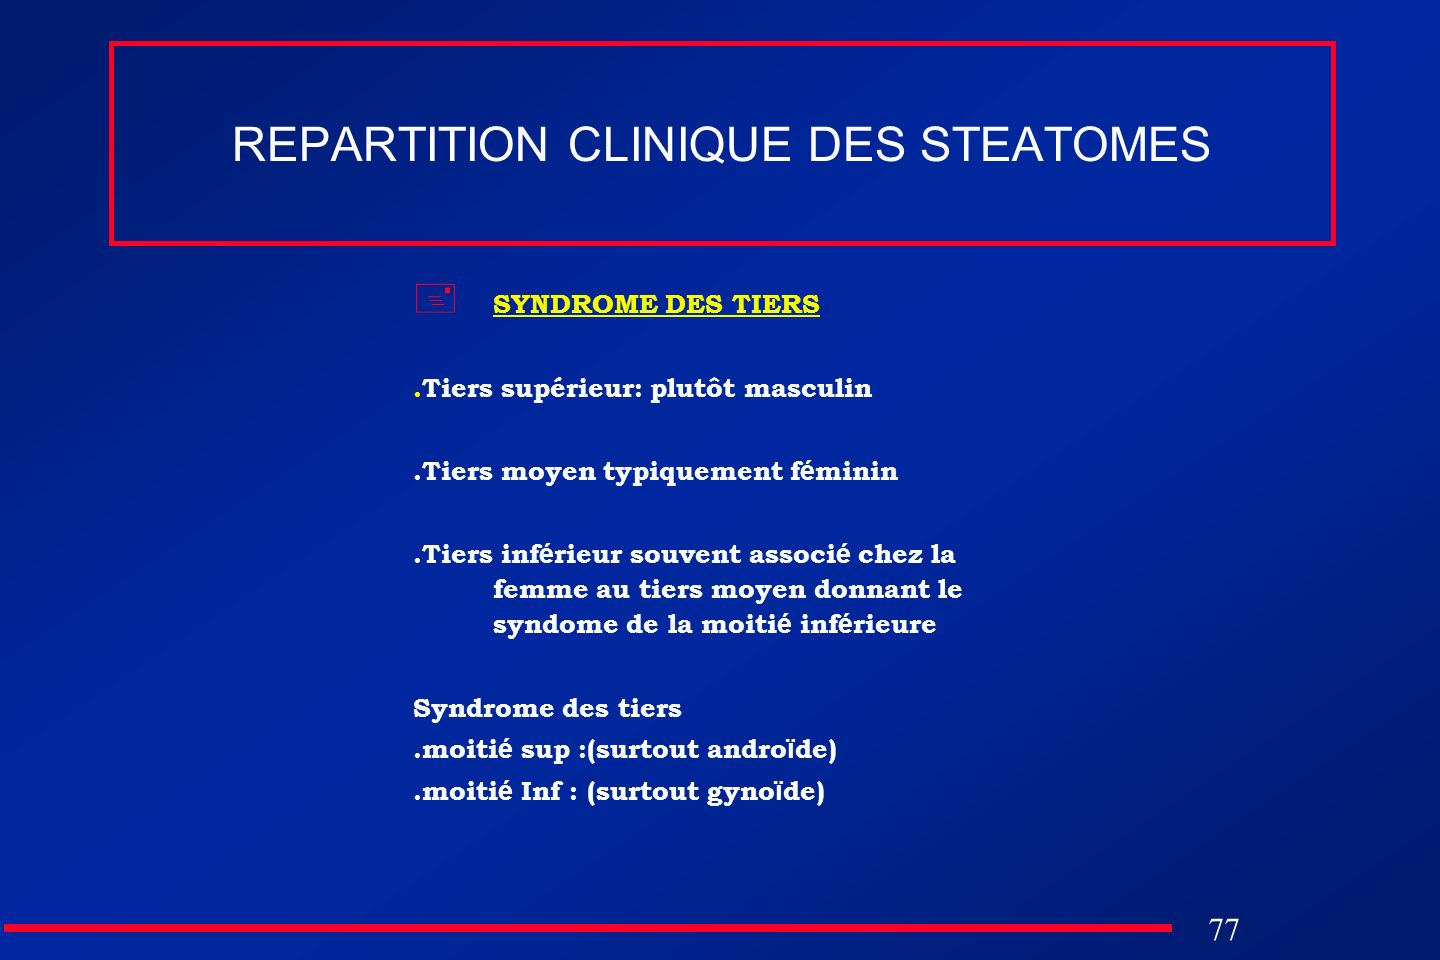 REPARTITION CLINIQUE DES STEATOMES